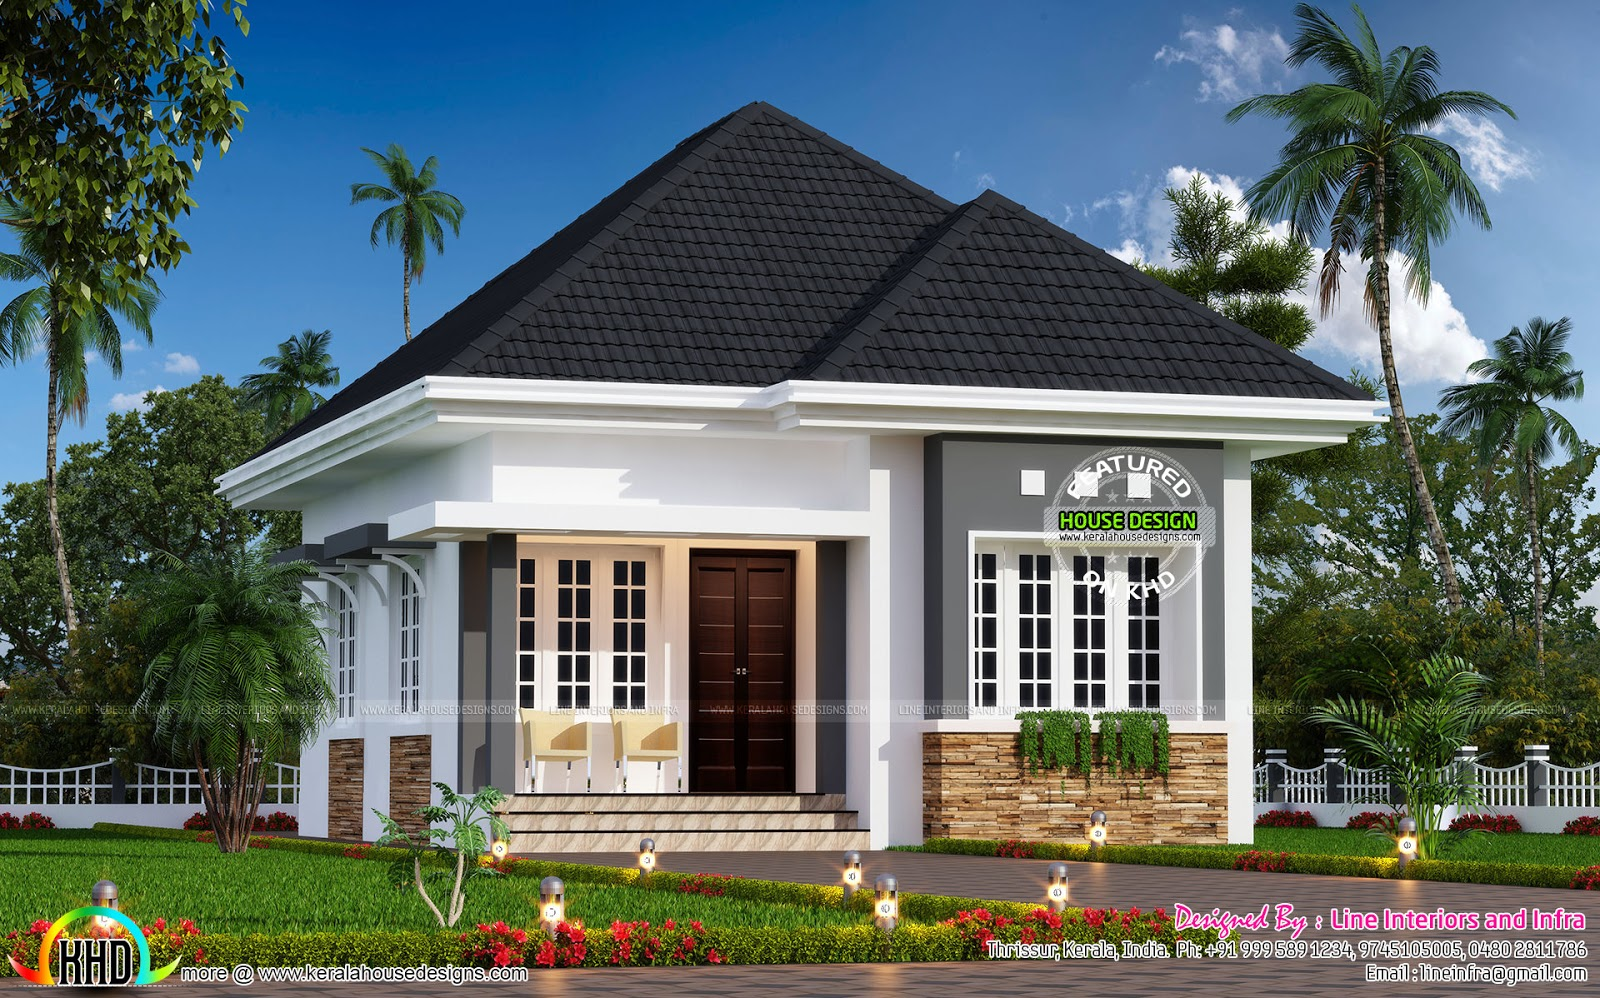 Cute little small house plan kerala home design and floor plans - Small house plans ...